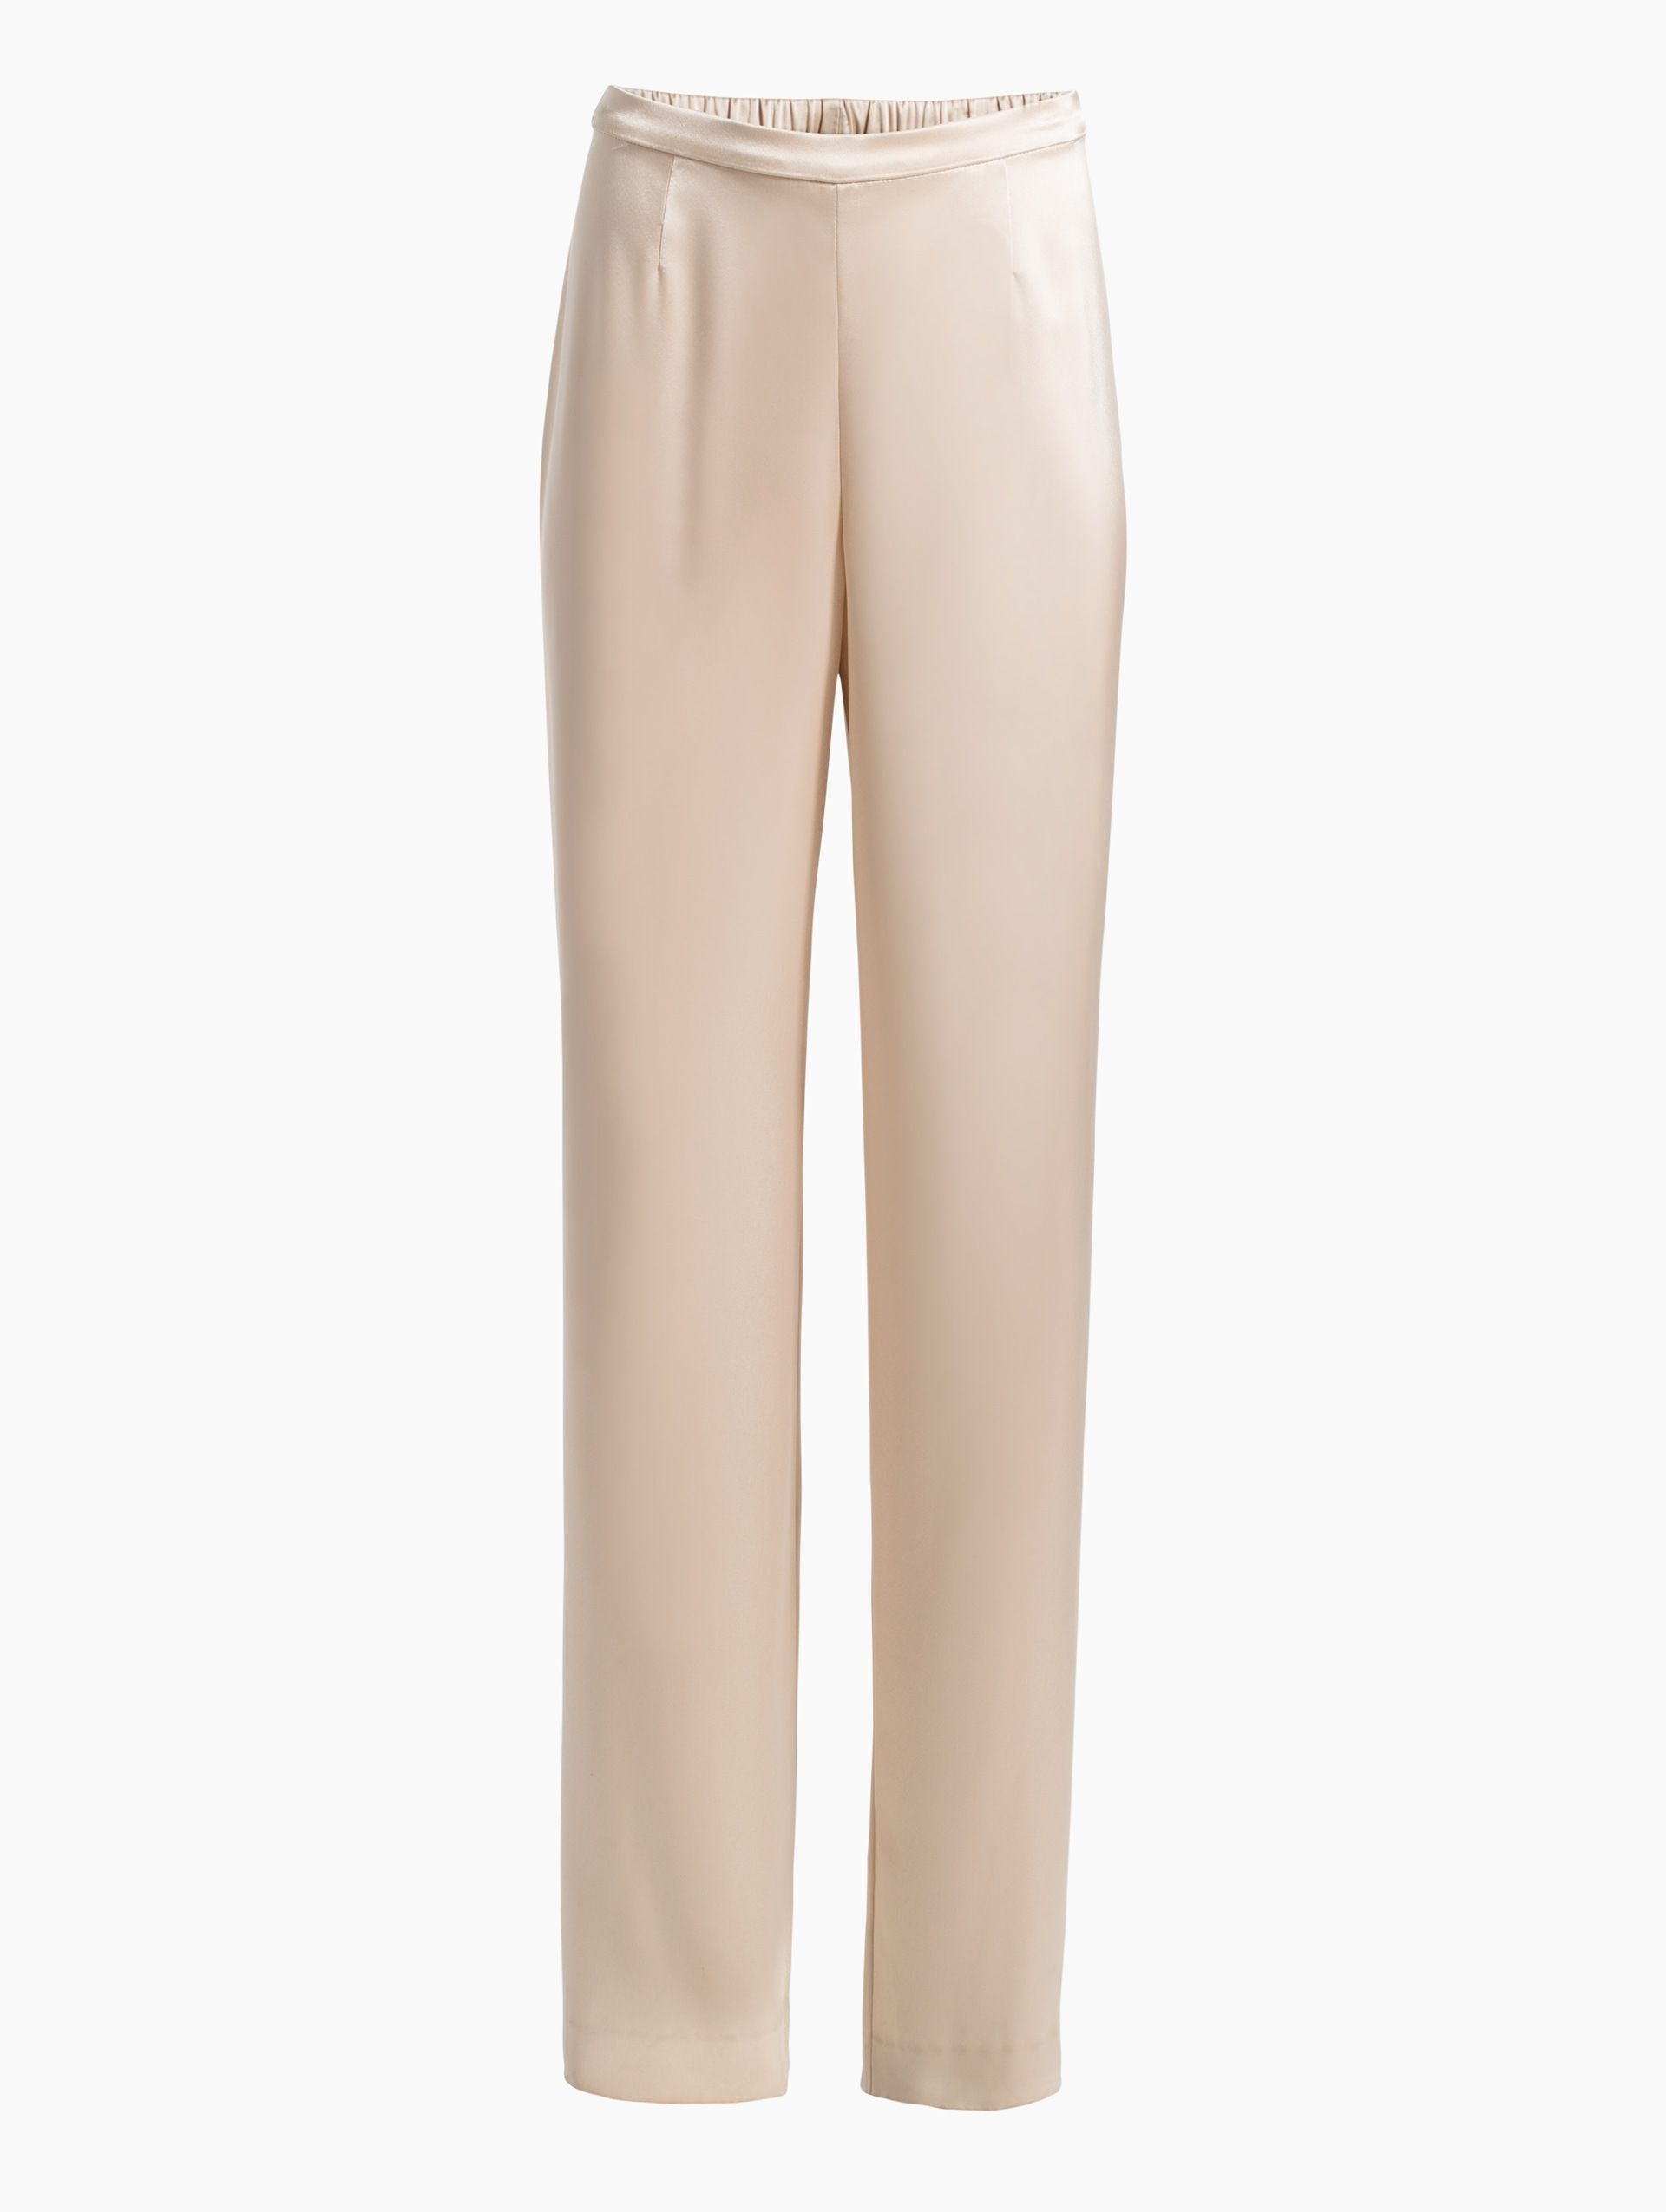 Saint John Liquid Satin Pants